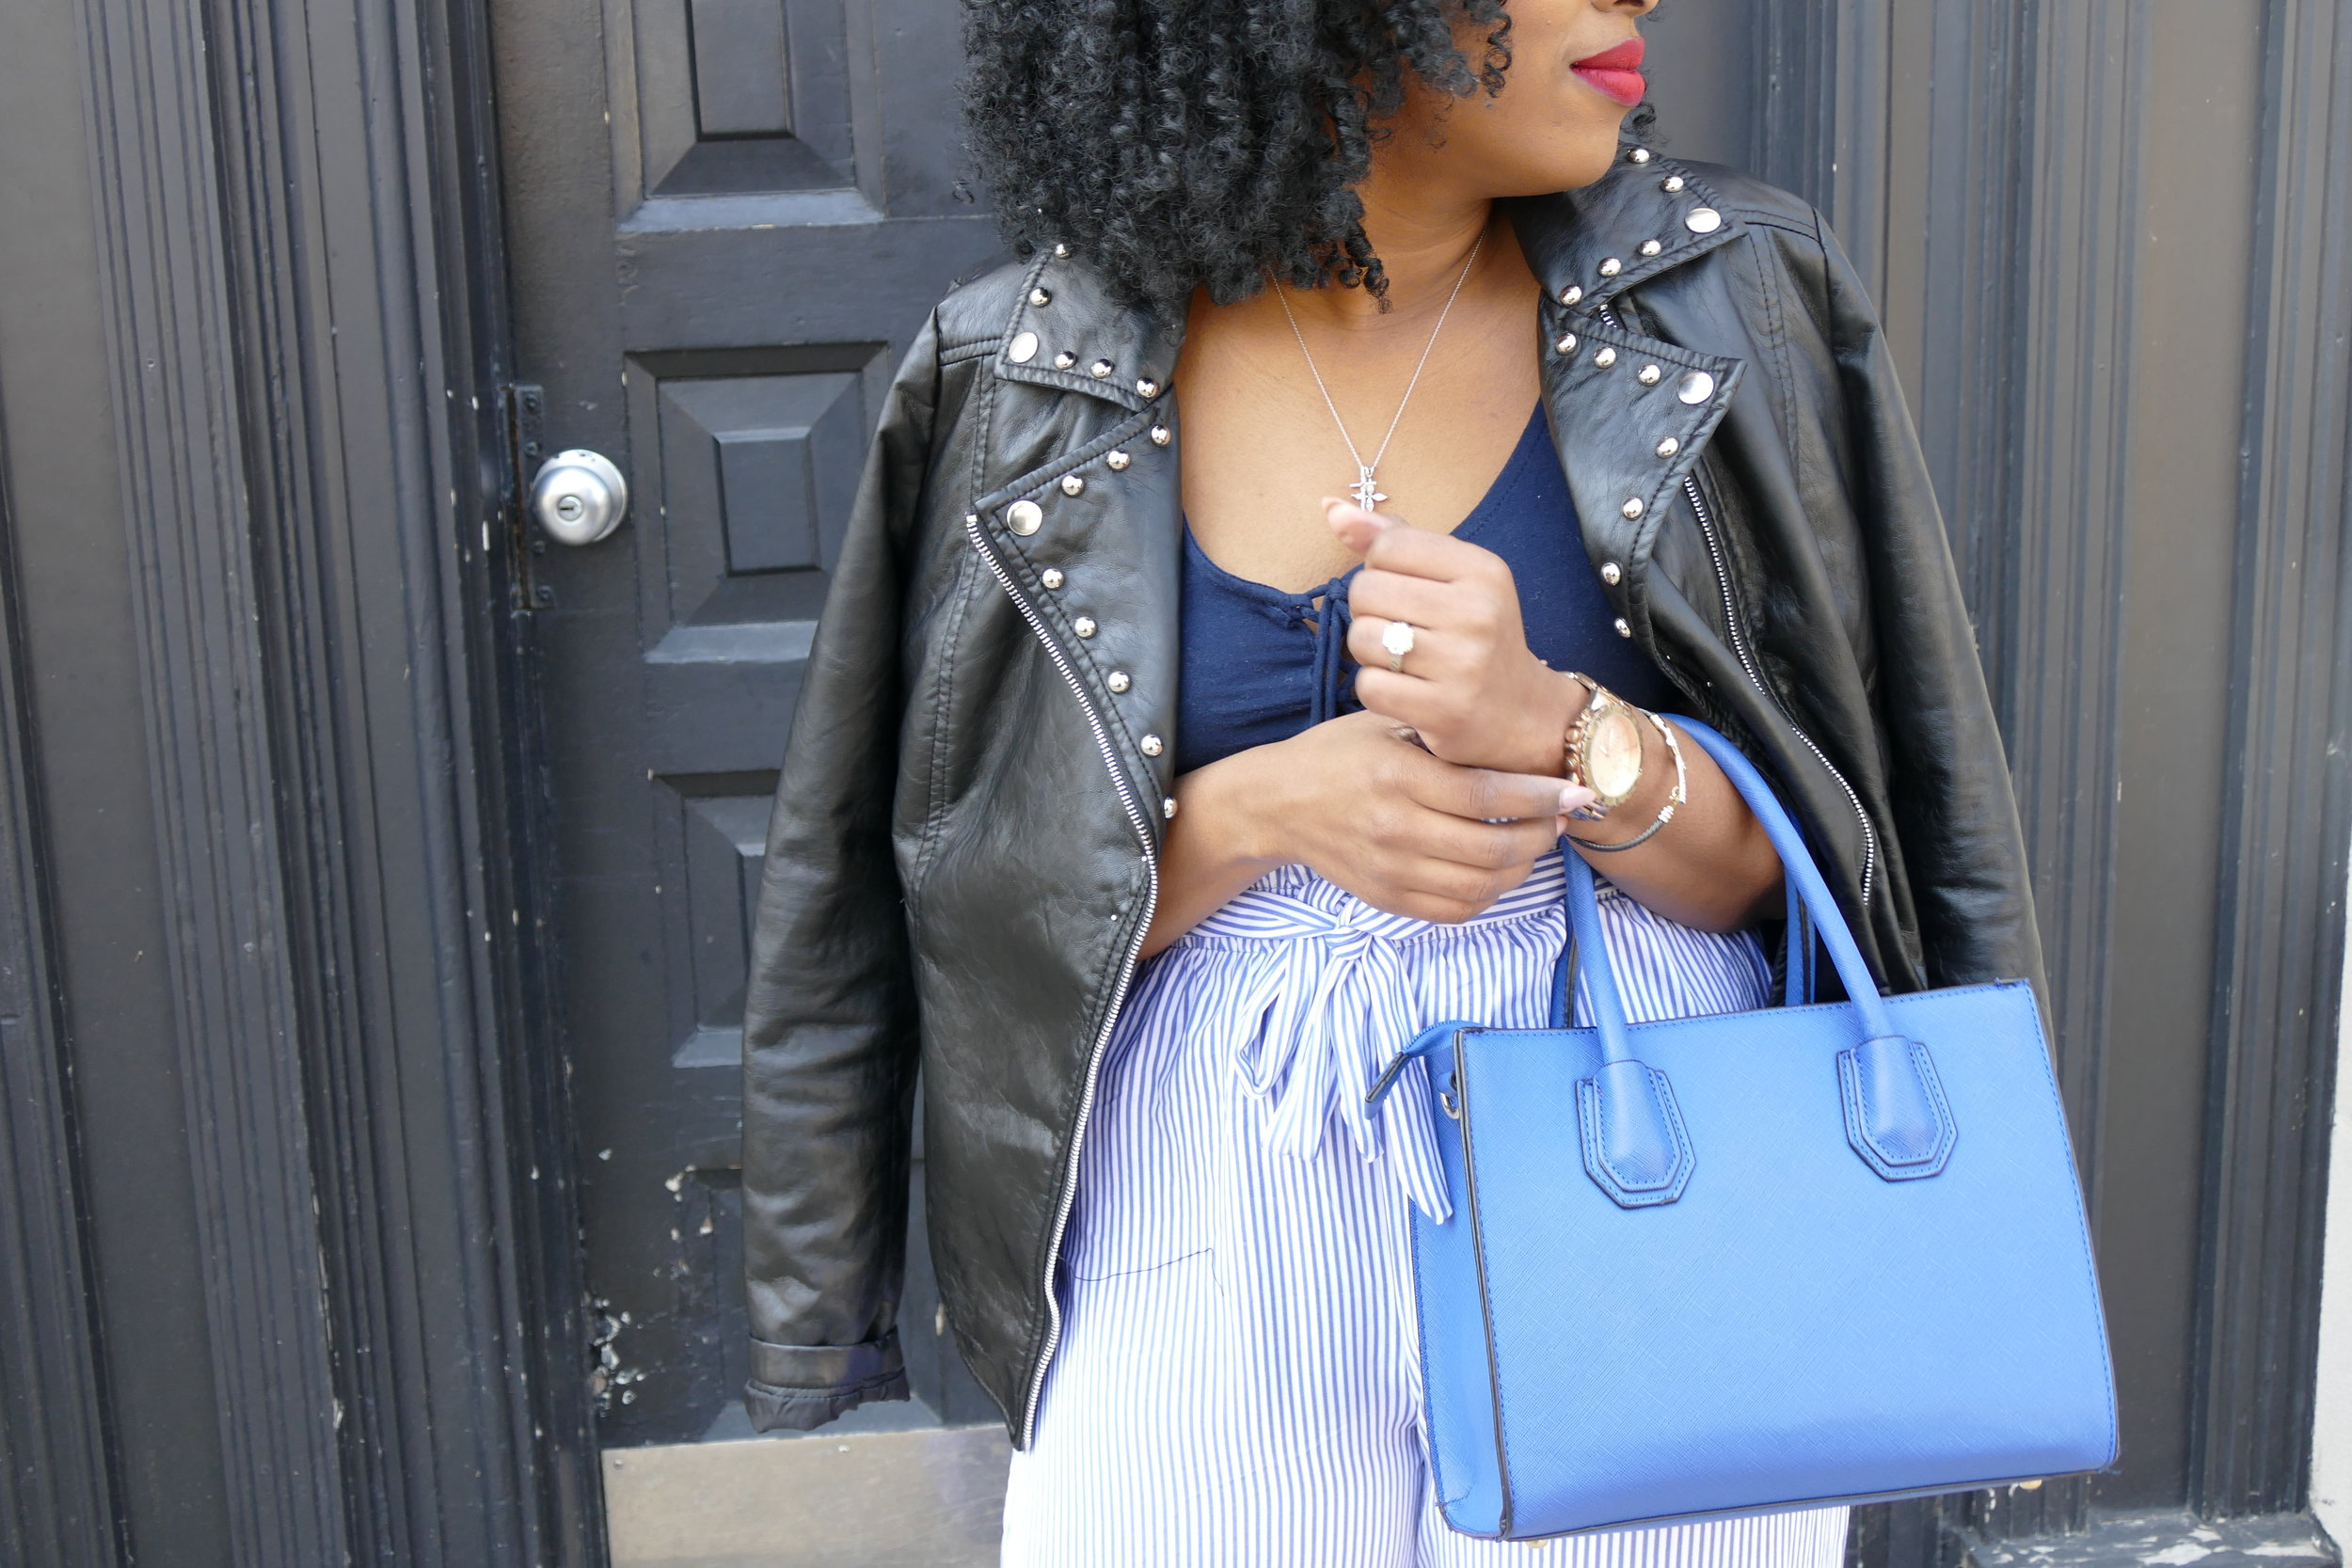 Leather Jacket, highwaisted pants, how to wear a leather jacket, high waisted pants outfit, blue pants outfit, how to style